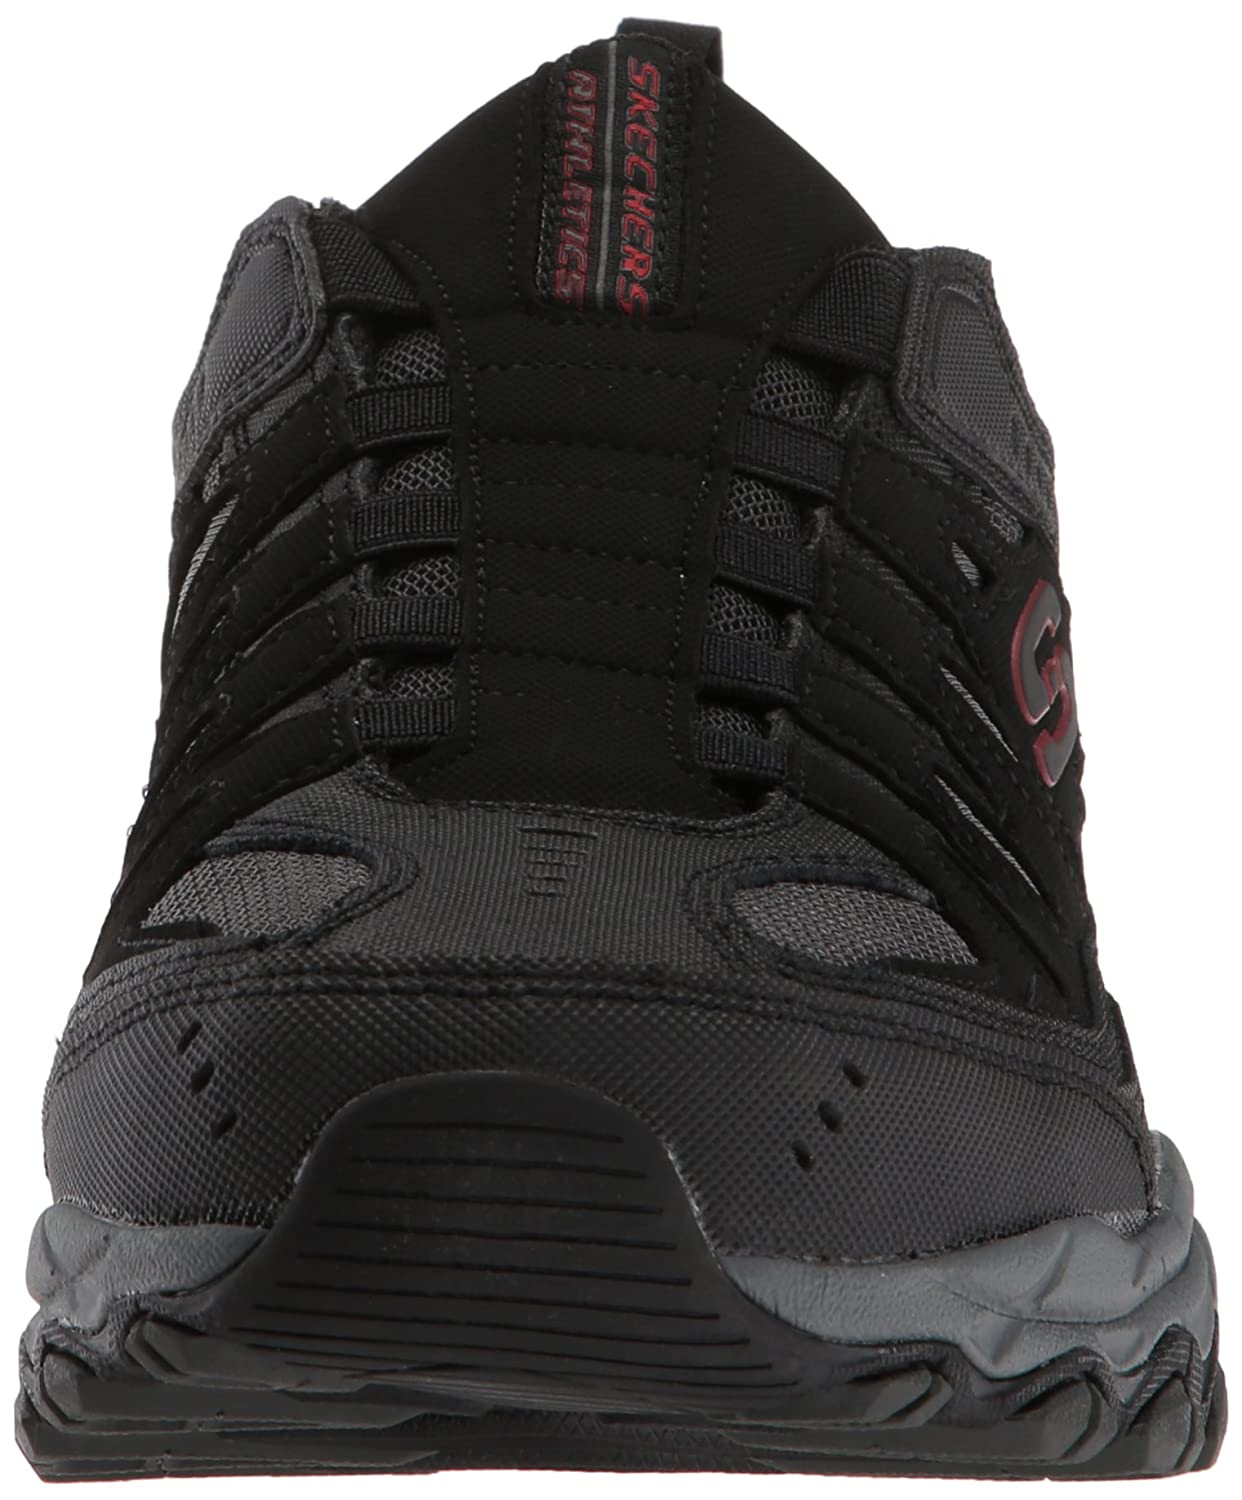 Skechers-Afterburn-Memory-Foam-M-Fit-Men-039-s-Sport-After-Burn-Sneakers-Shoes thumbnail 11